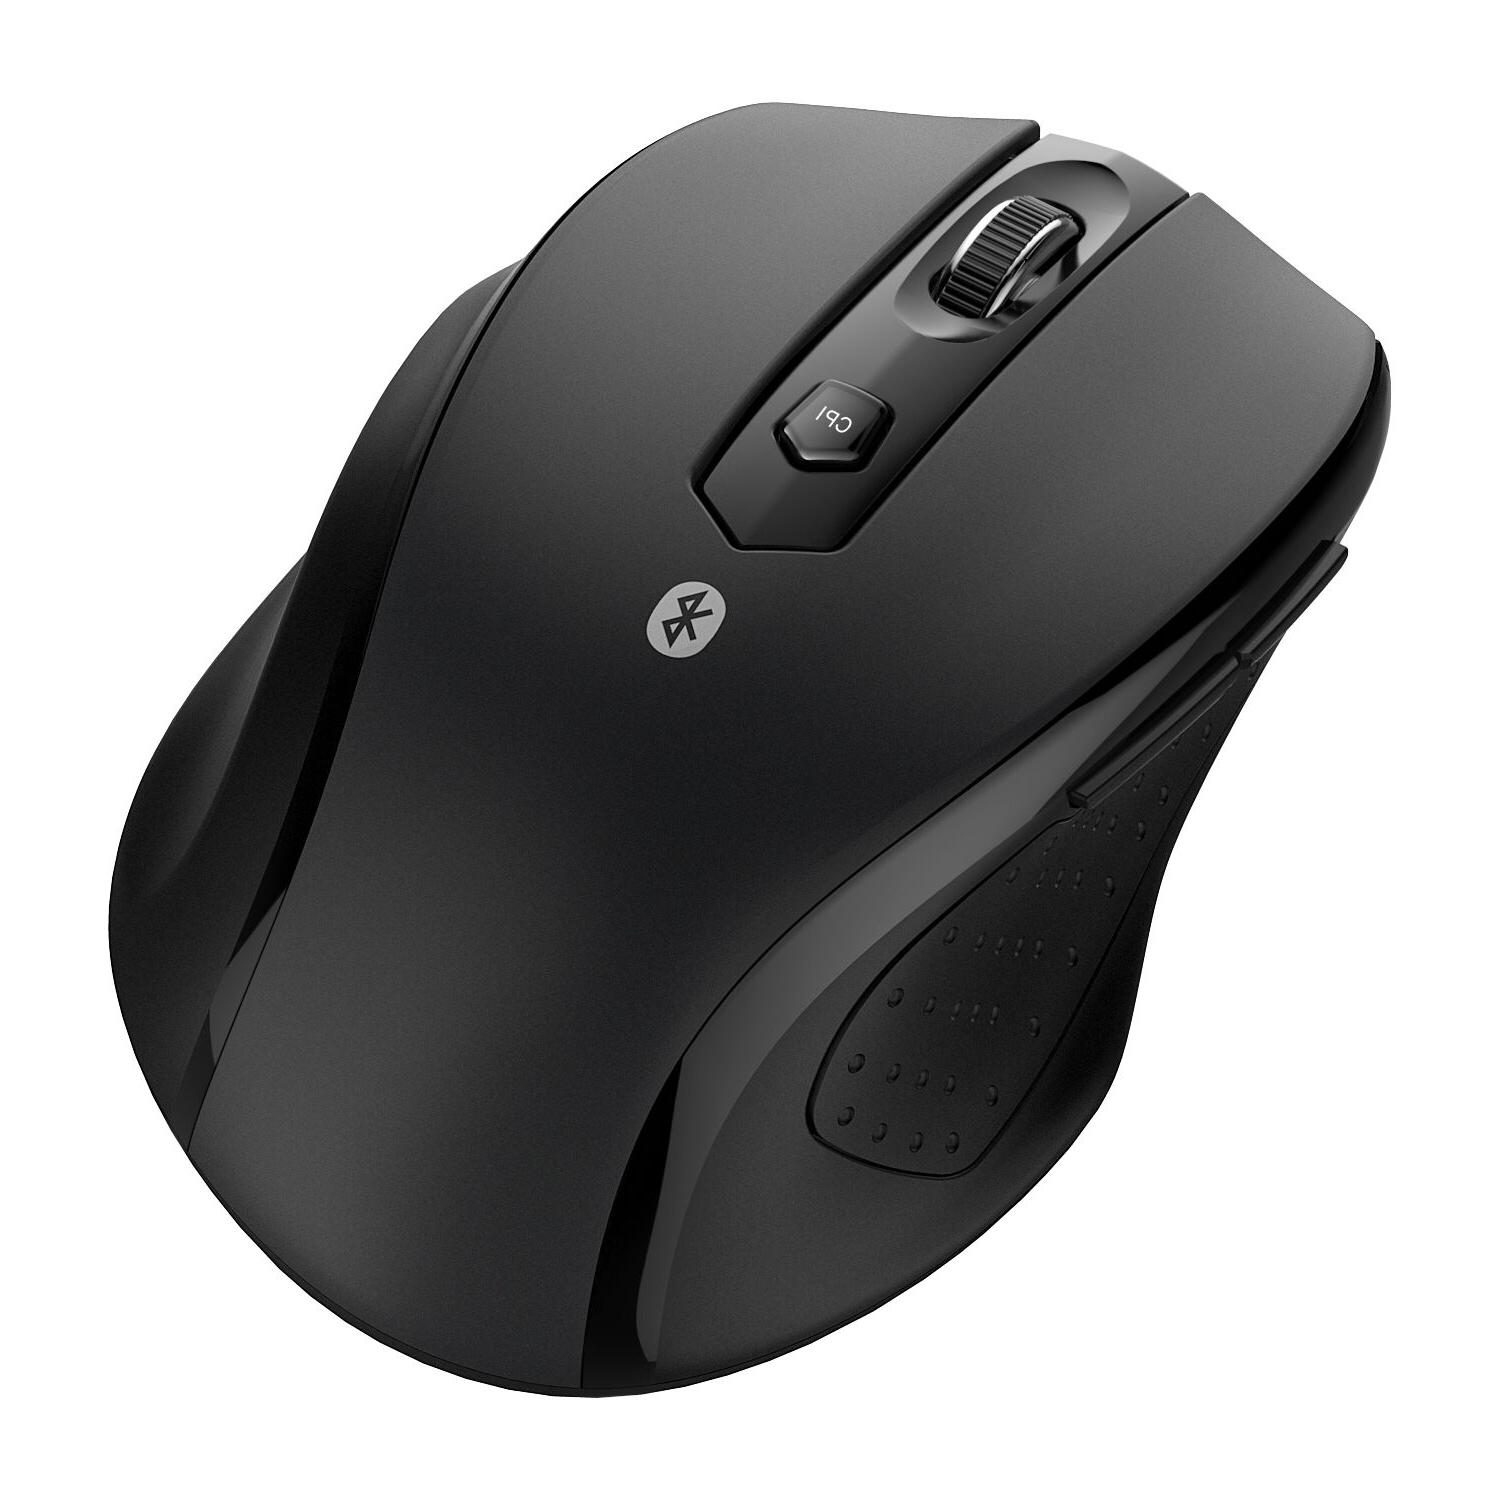 JETech Wireless Mouse Optical Mice for Mac Android OS Black